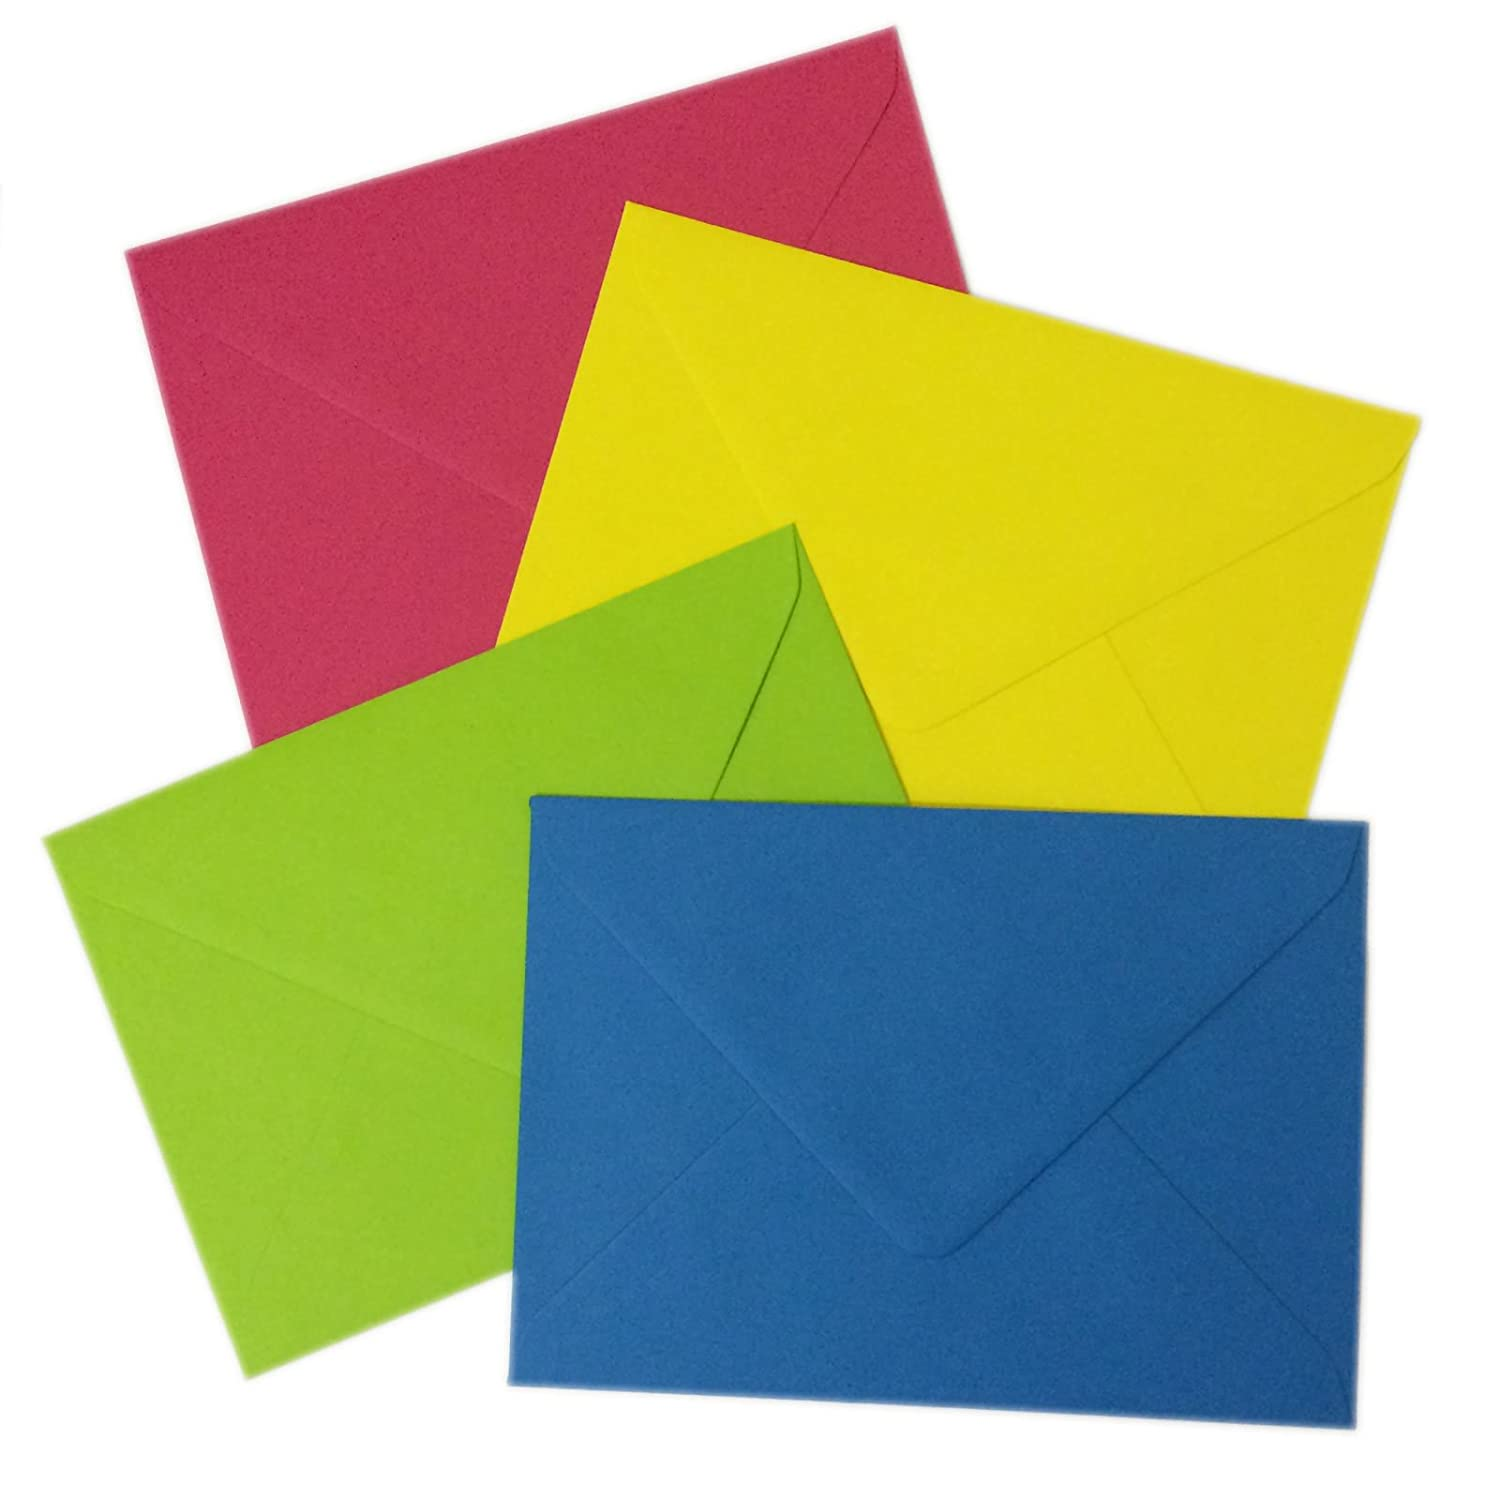 20 C6 Bright Mixed Coloured Envelopes - Packed by the CandyRushTM Charity - Blue, Yellow, Green, Pink (114x162mm approx 4x6) For Greetings Cards Crafts & Party Invitations Acceptable Enterprises